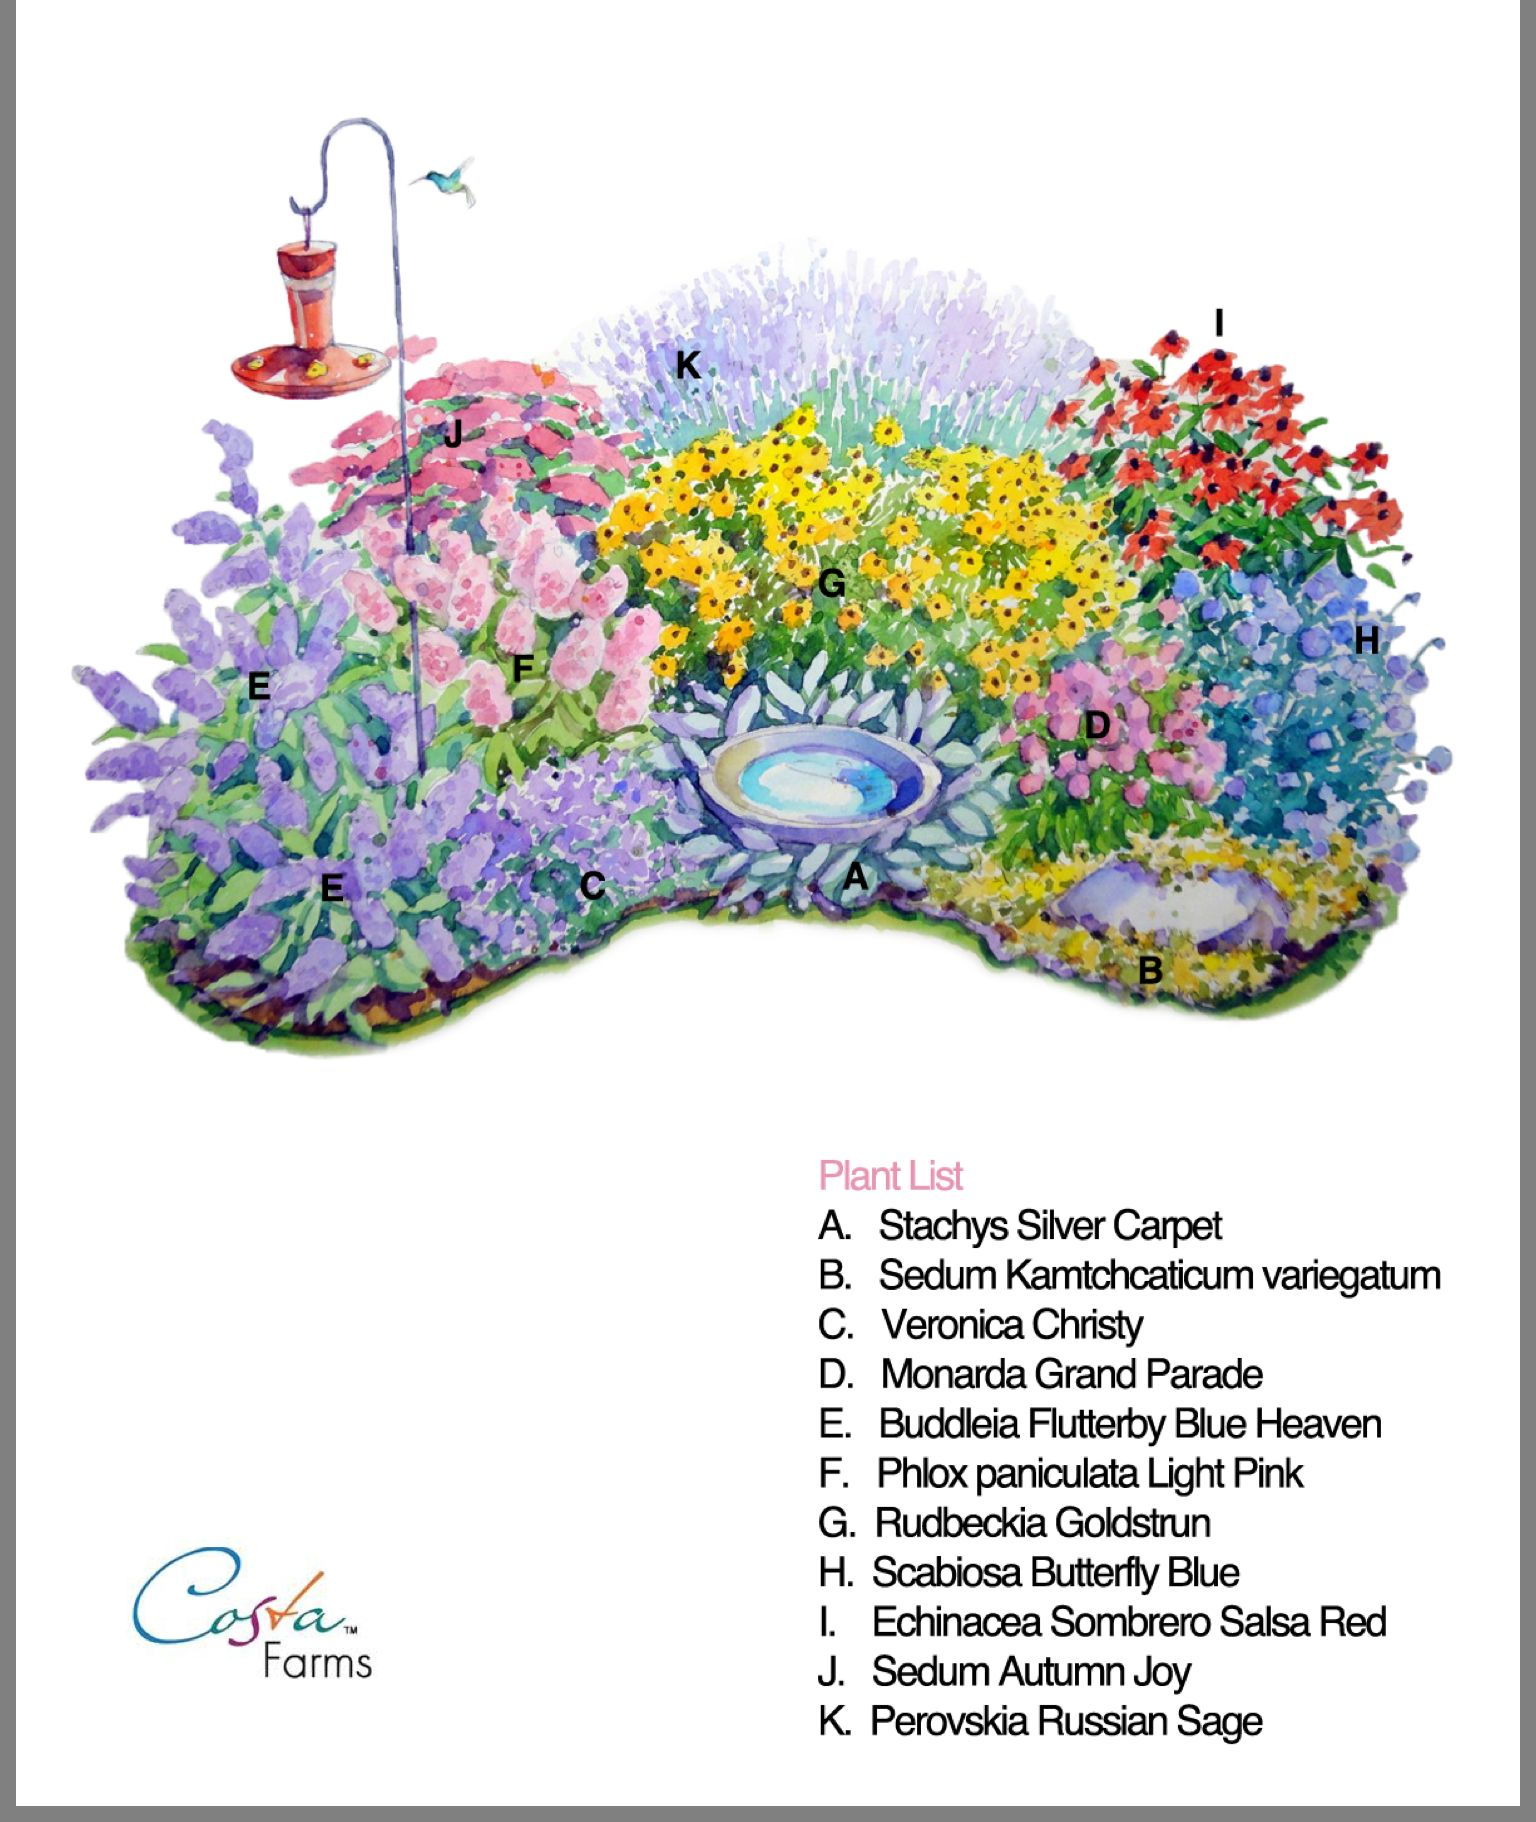 Pin By Jessica Flasch On Gardening Perennial Garden Plans Flower Garden Plans Butterfly Garden Design